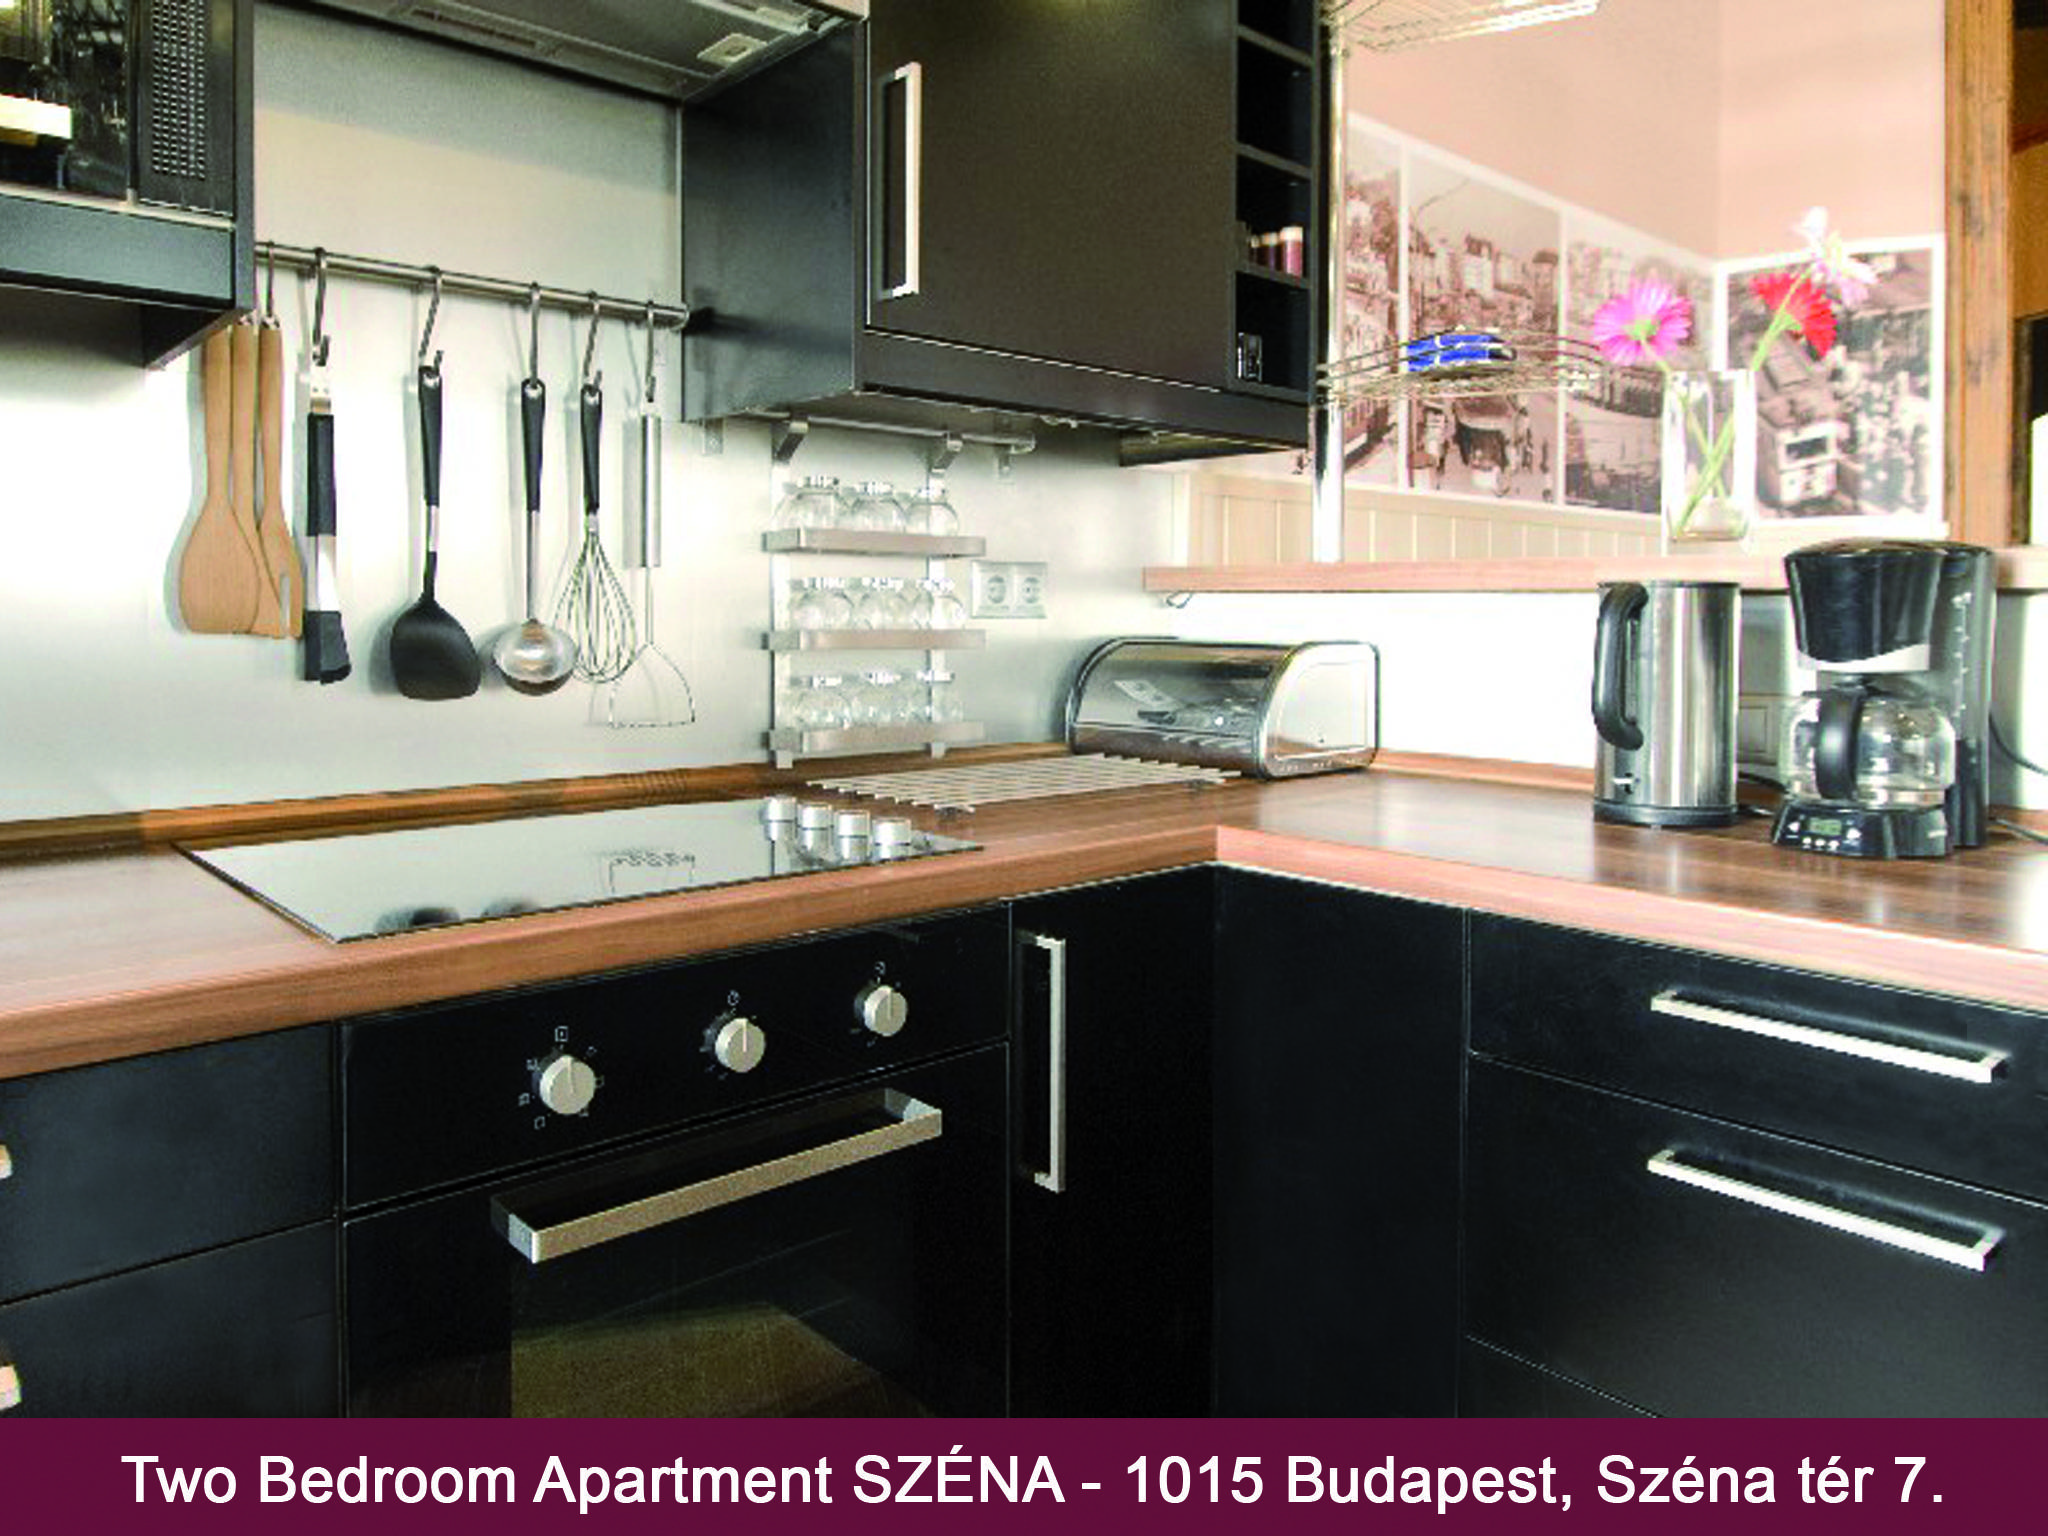 Dream Homes City Apartment Széna Budapest - Konyha